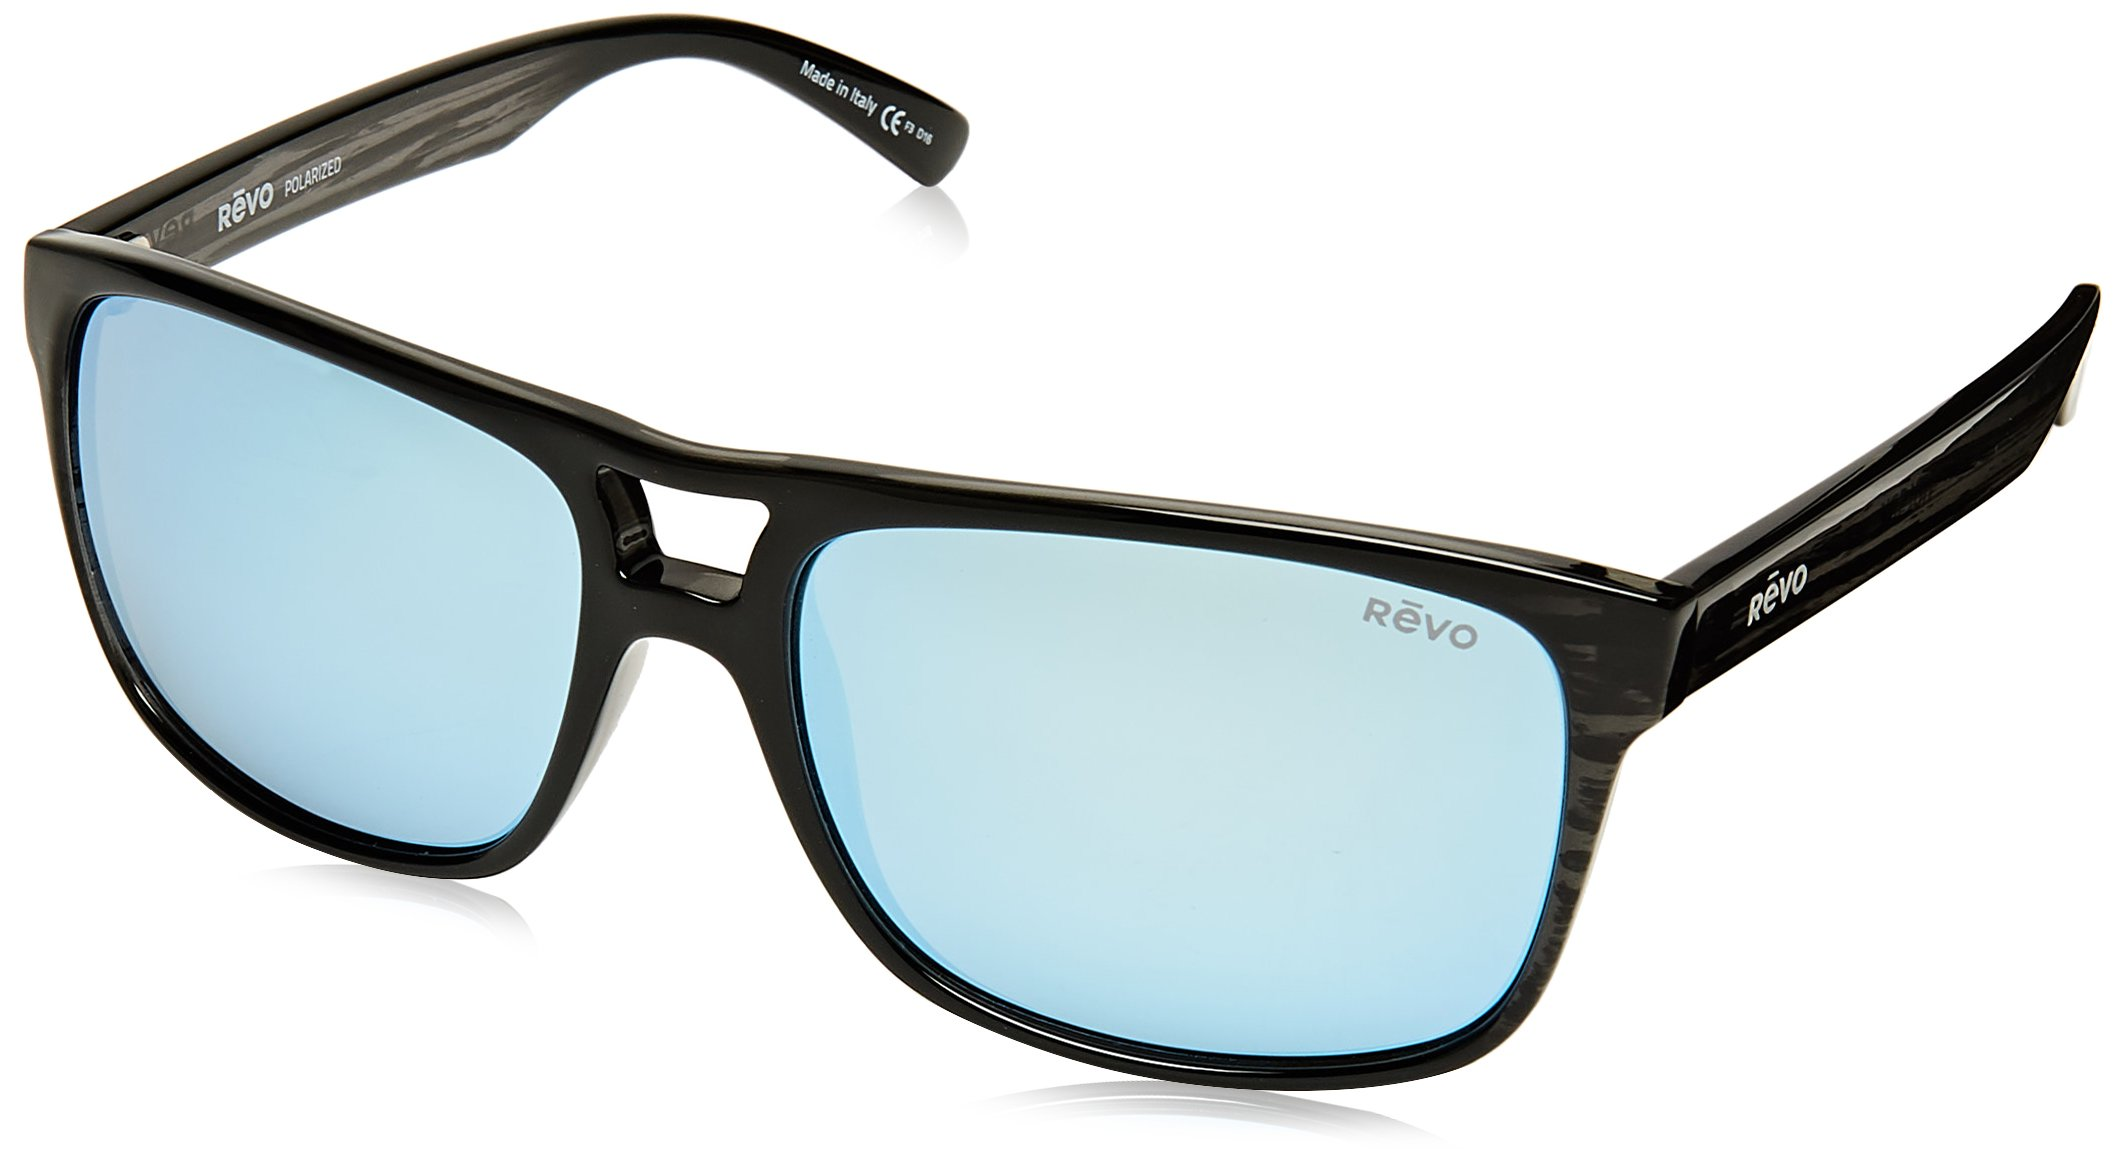 Revo Holsby Style and Performance Polarized Sunglasses, RE1019, Black Woodgrain, 58 mm